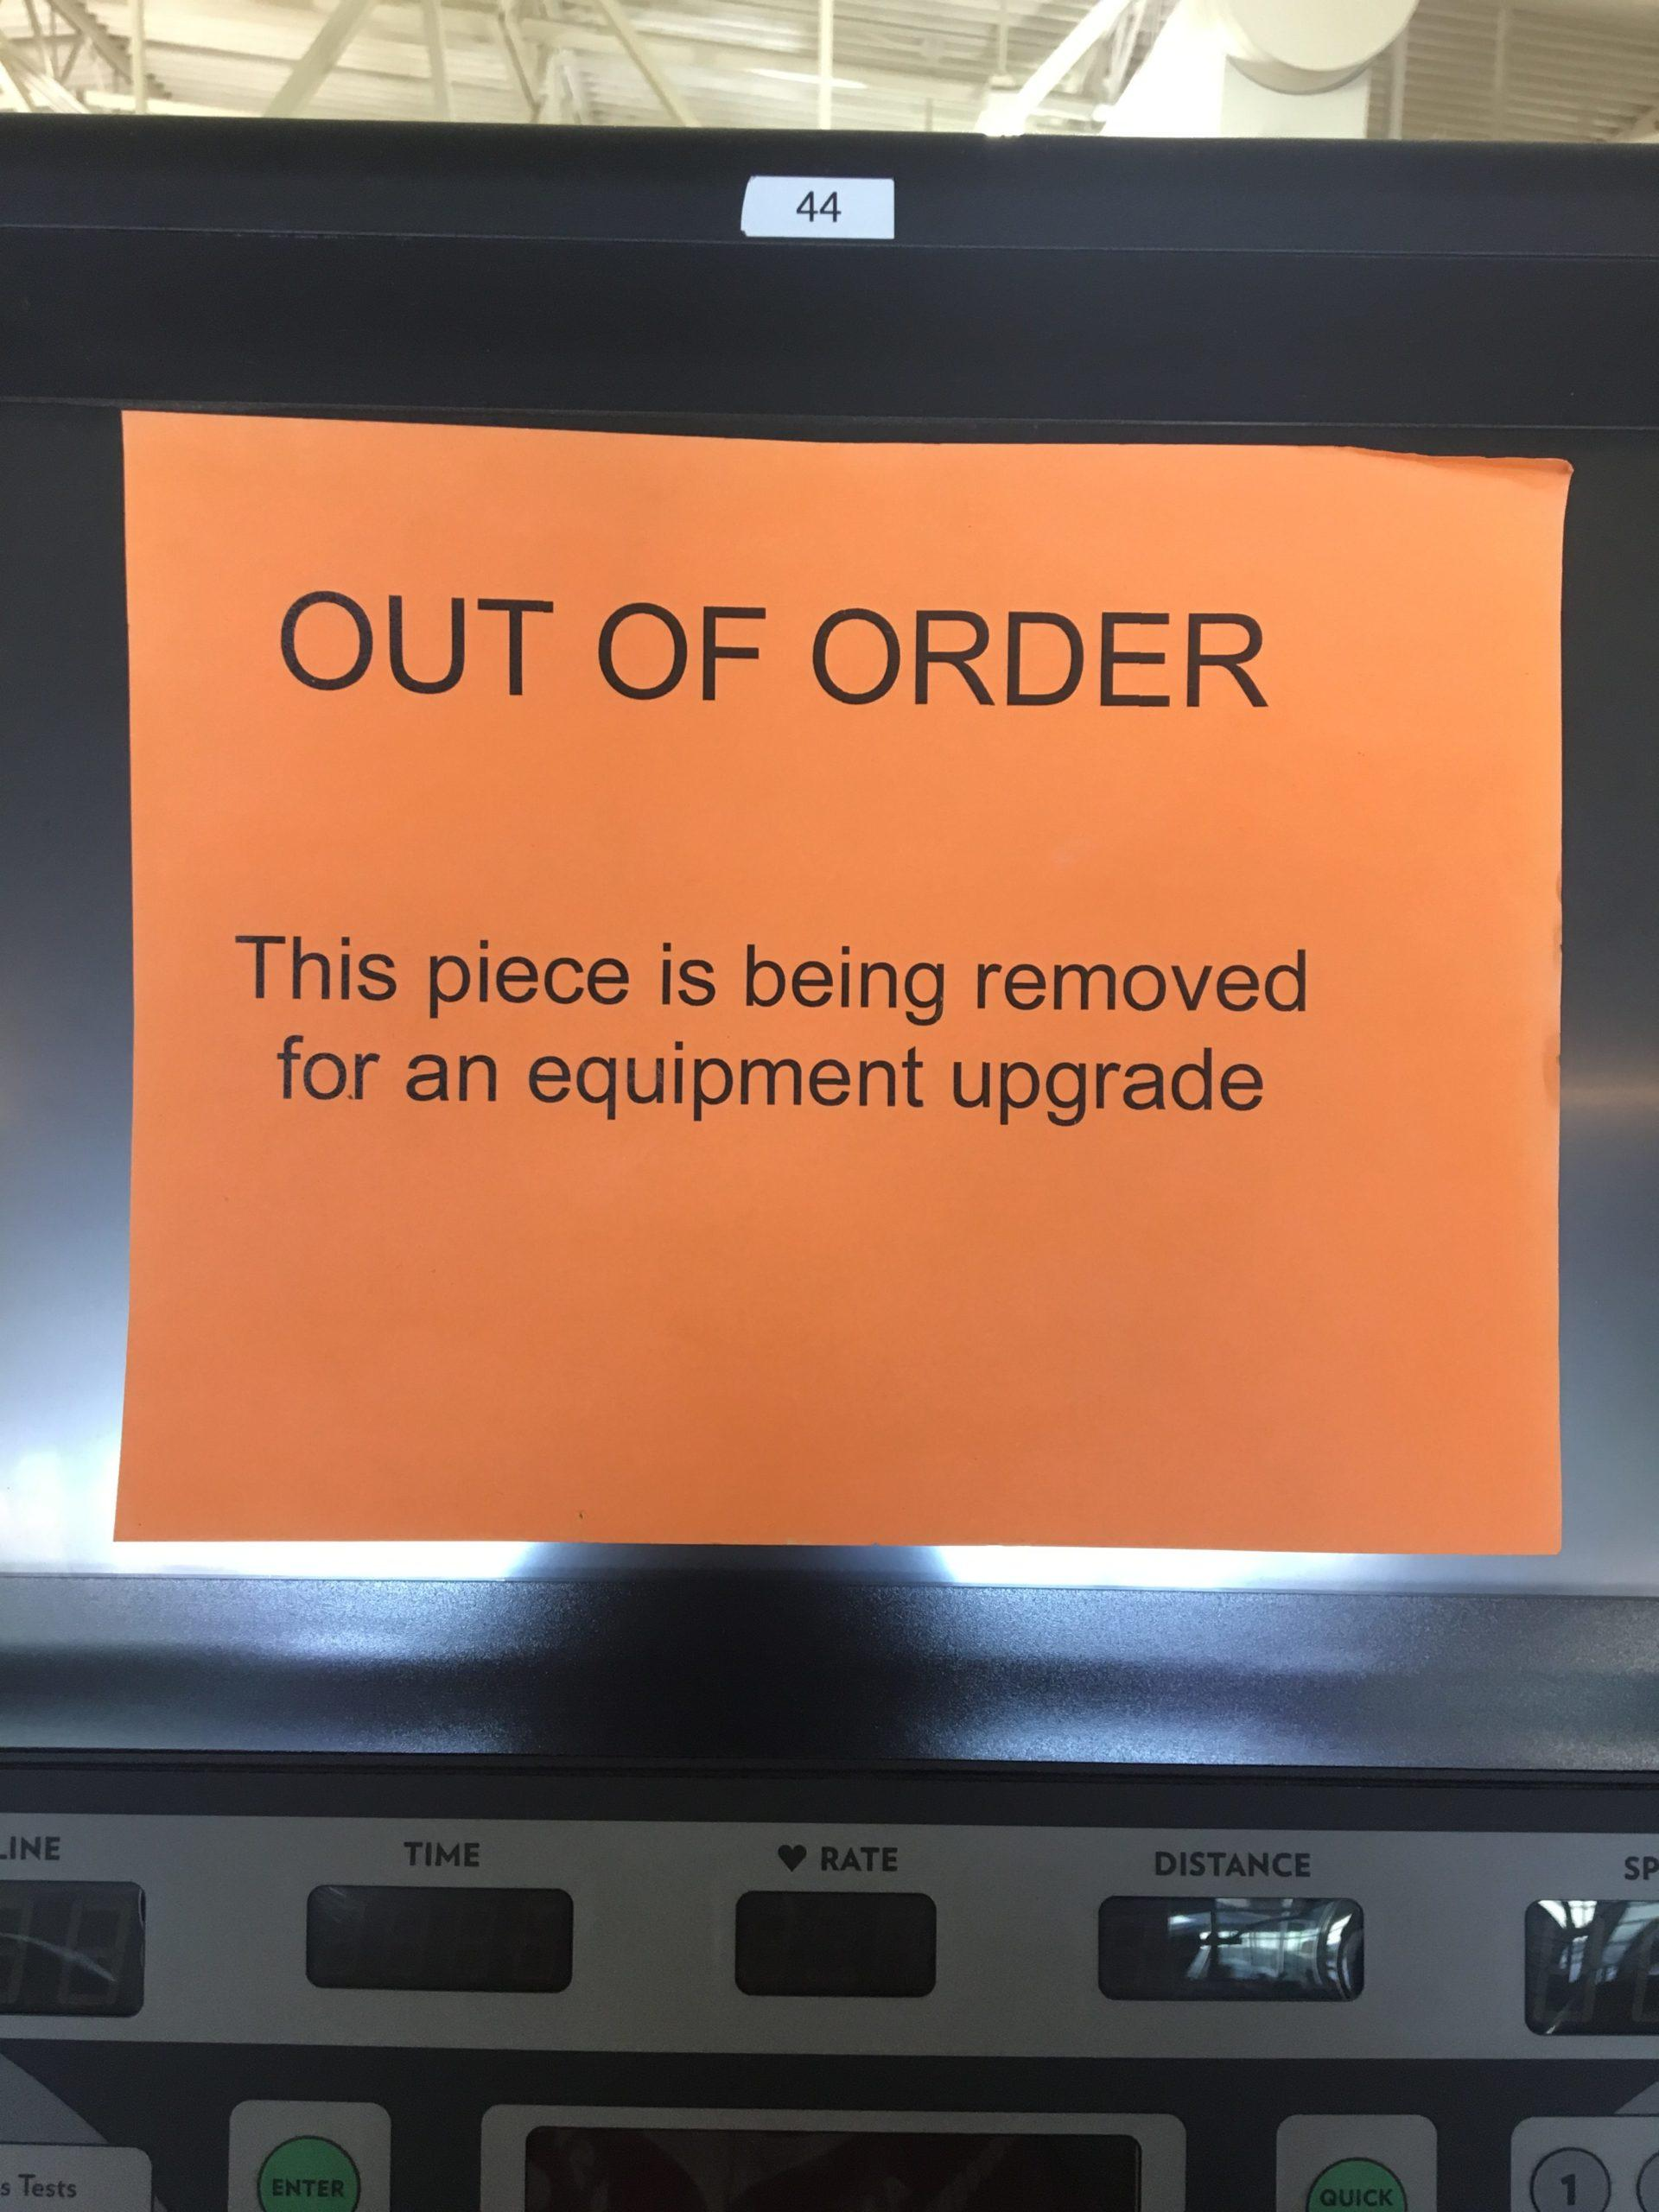 The rec center is upgrading its equipment.